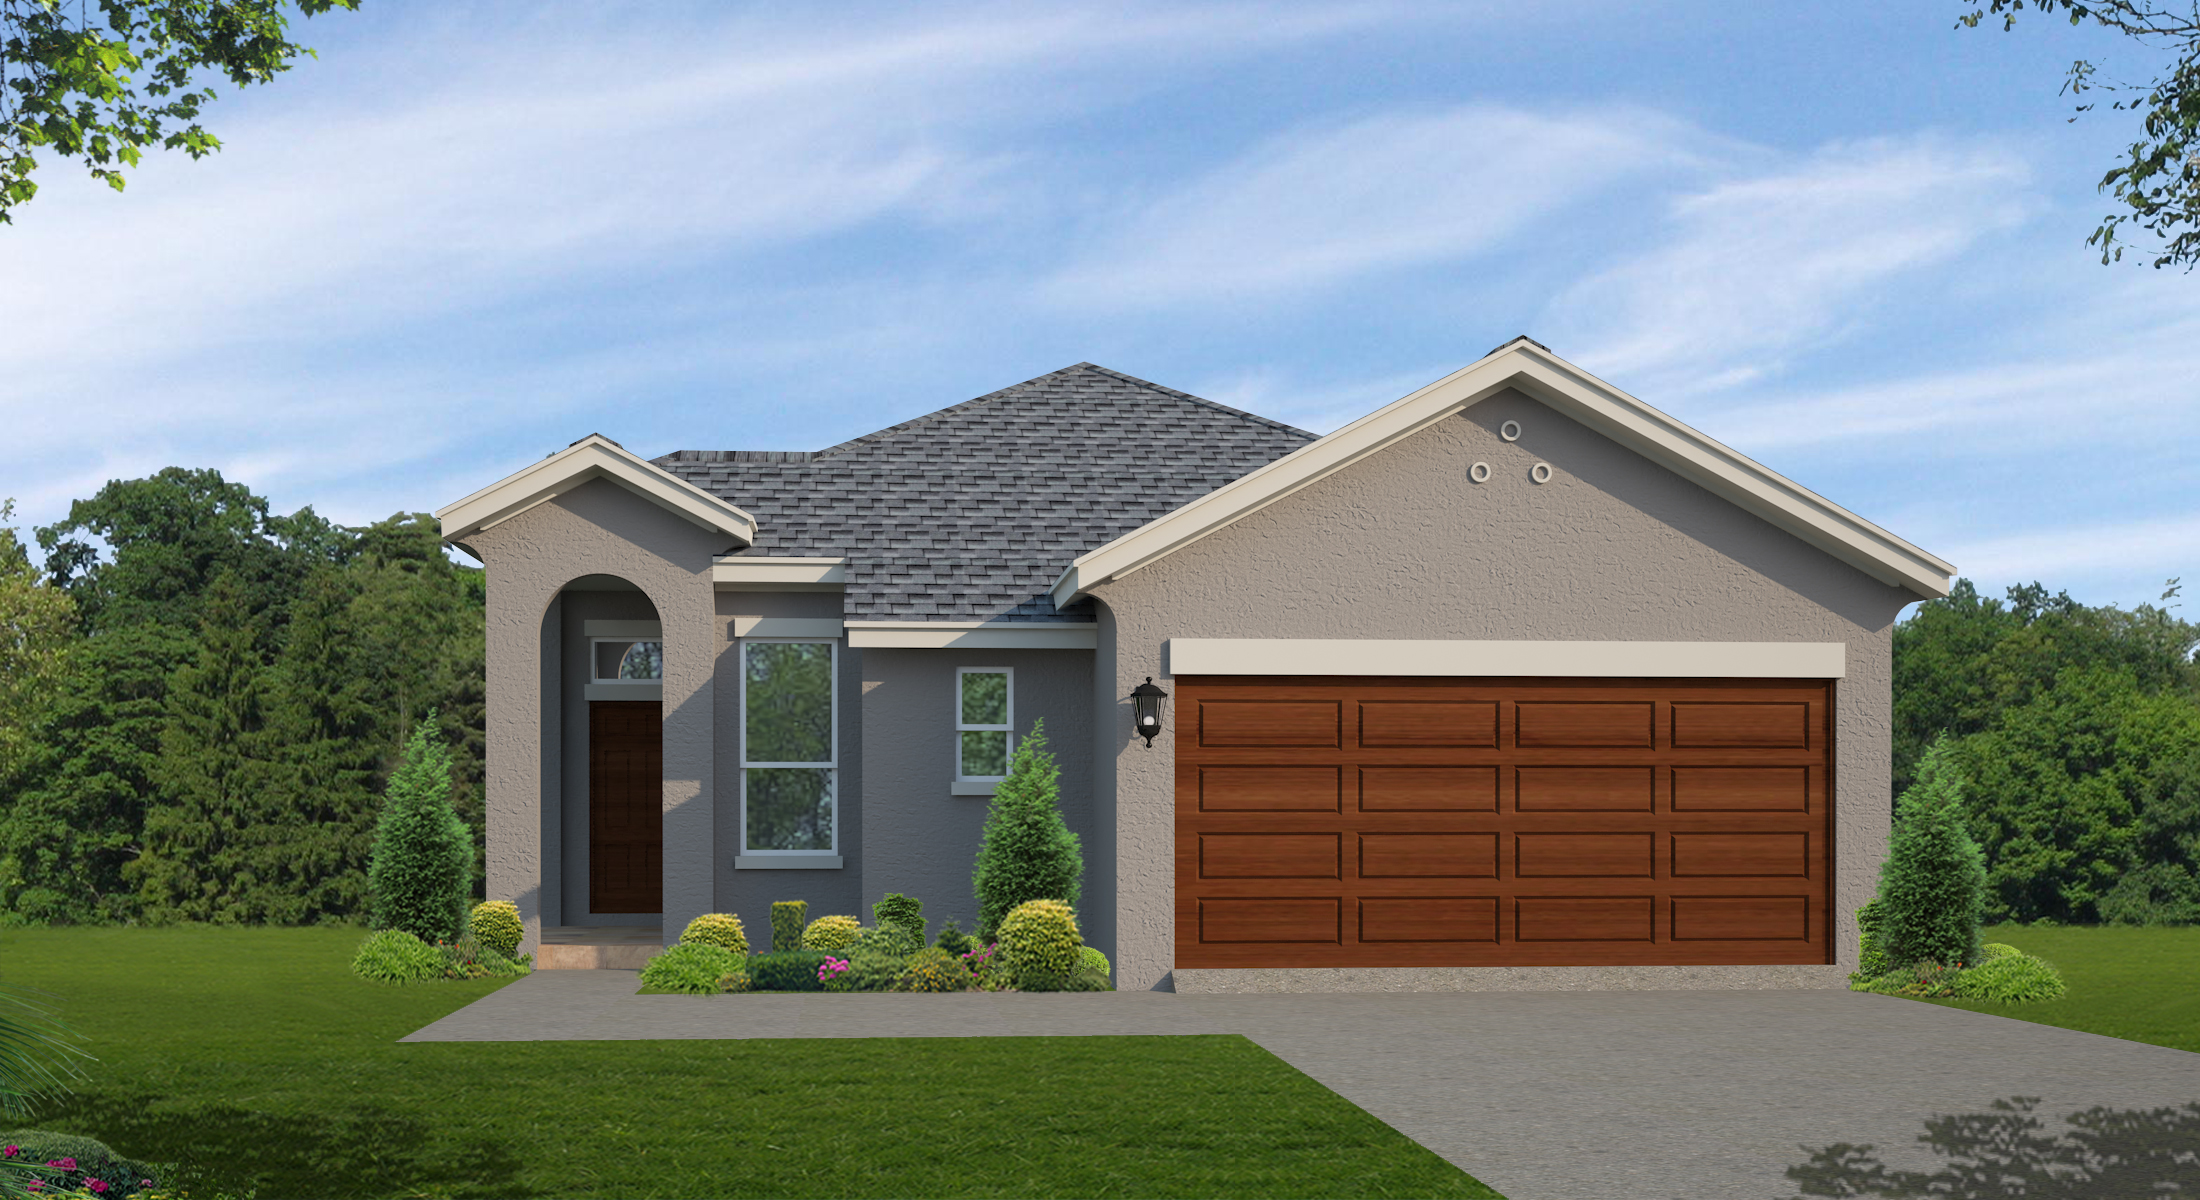 The Catania | Elevation C | $278,990